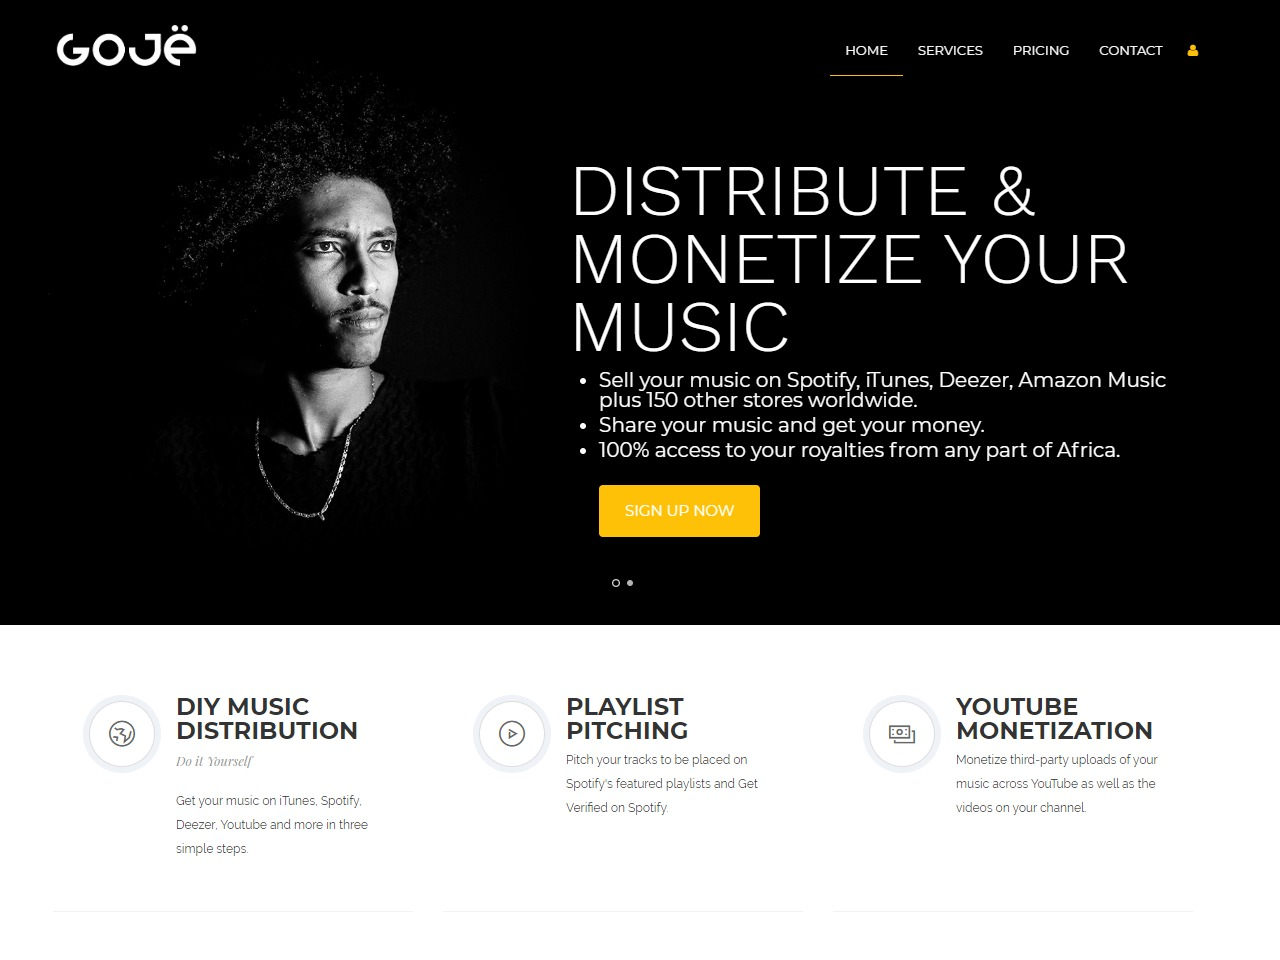 Goje Sell Your Music Online - Digital Music Distribution